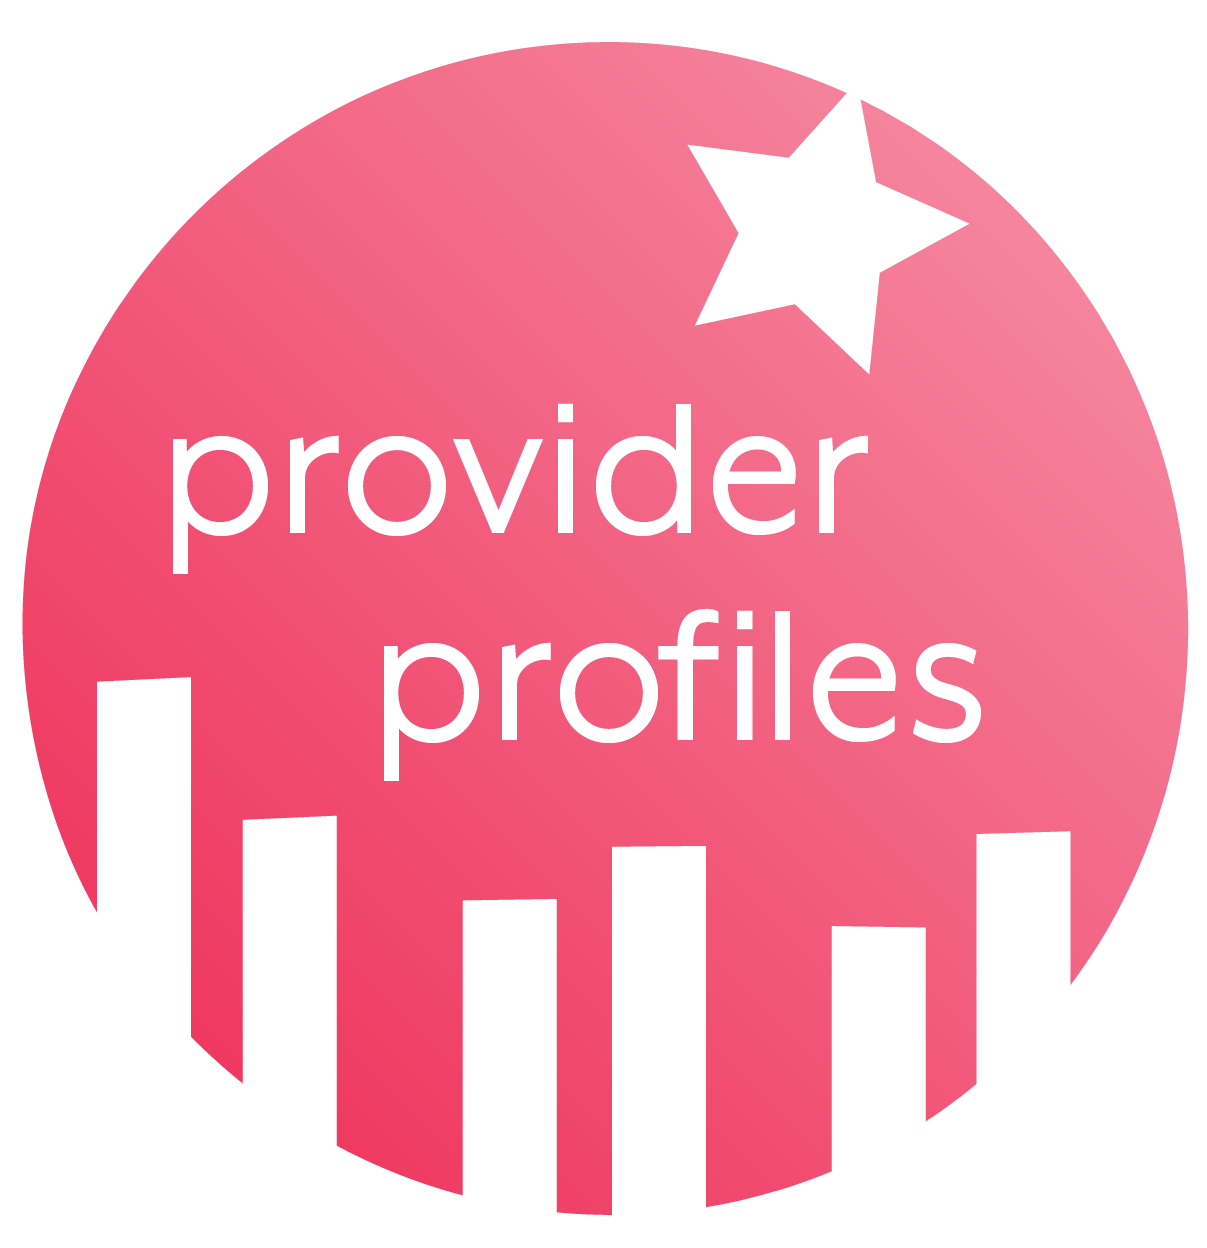 View the Provider Profiles document